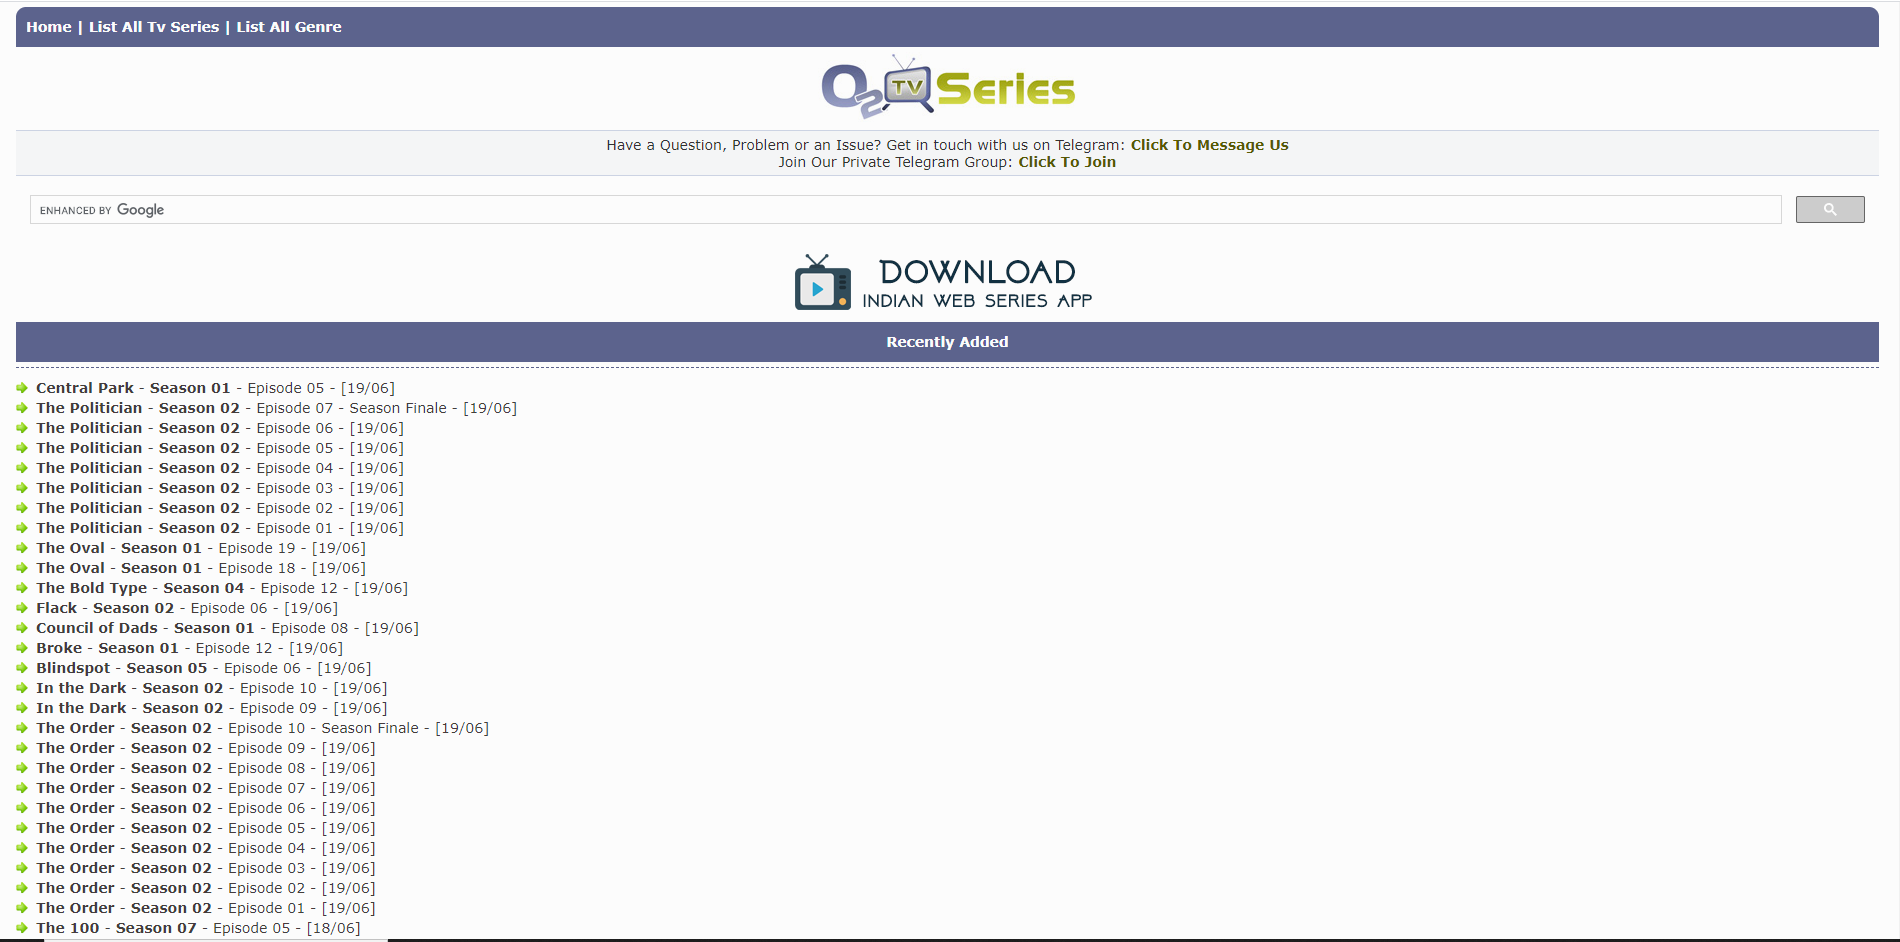 O2tvseries A Z Download Trending Tvseries A Z From O2tvseries Com Video Editing Best Tv Tv Series